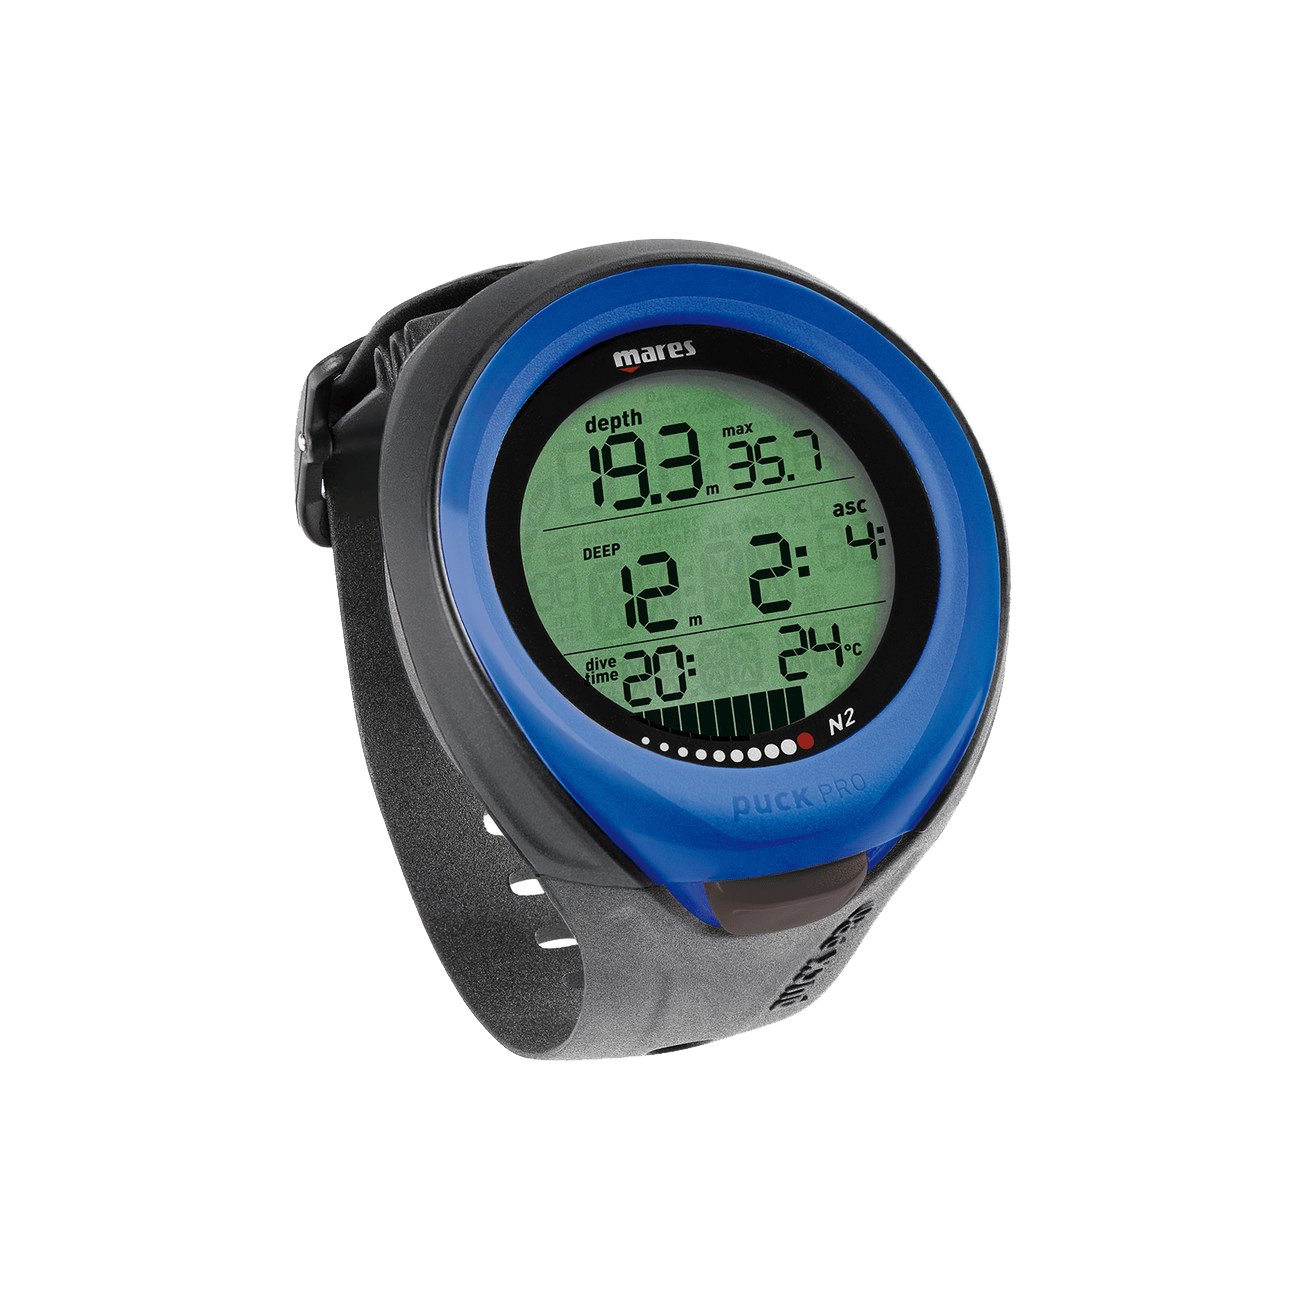 Mares puck pro dive computer gill divers store - Mares puck dive computer ...